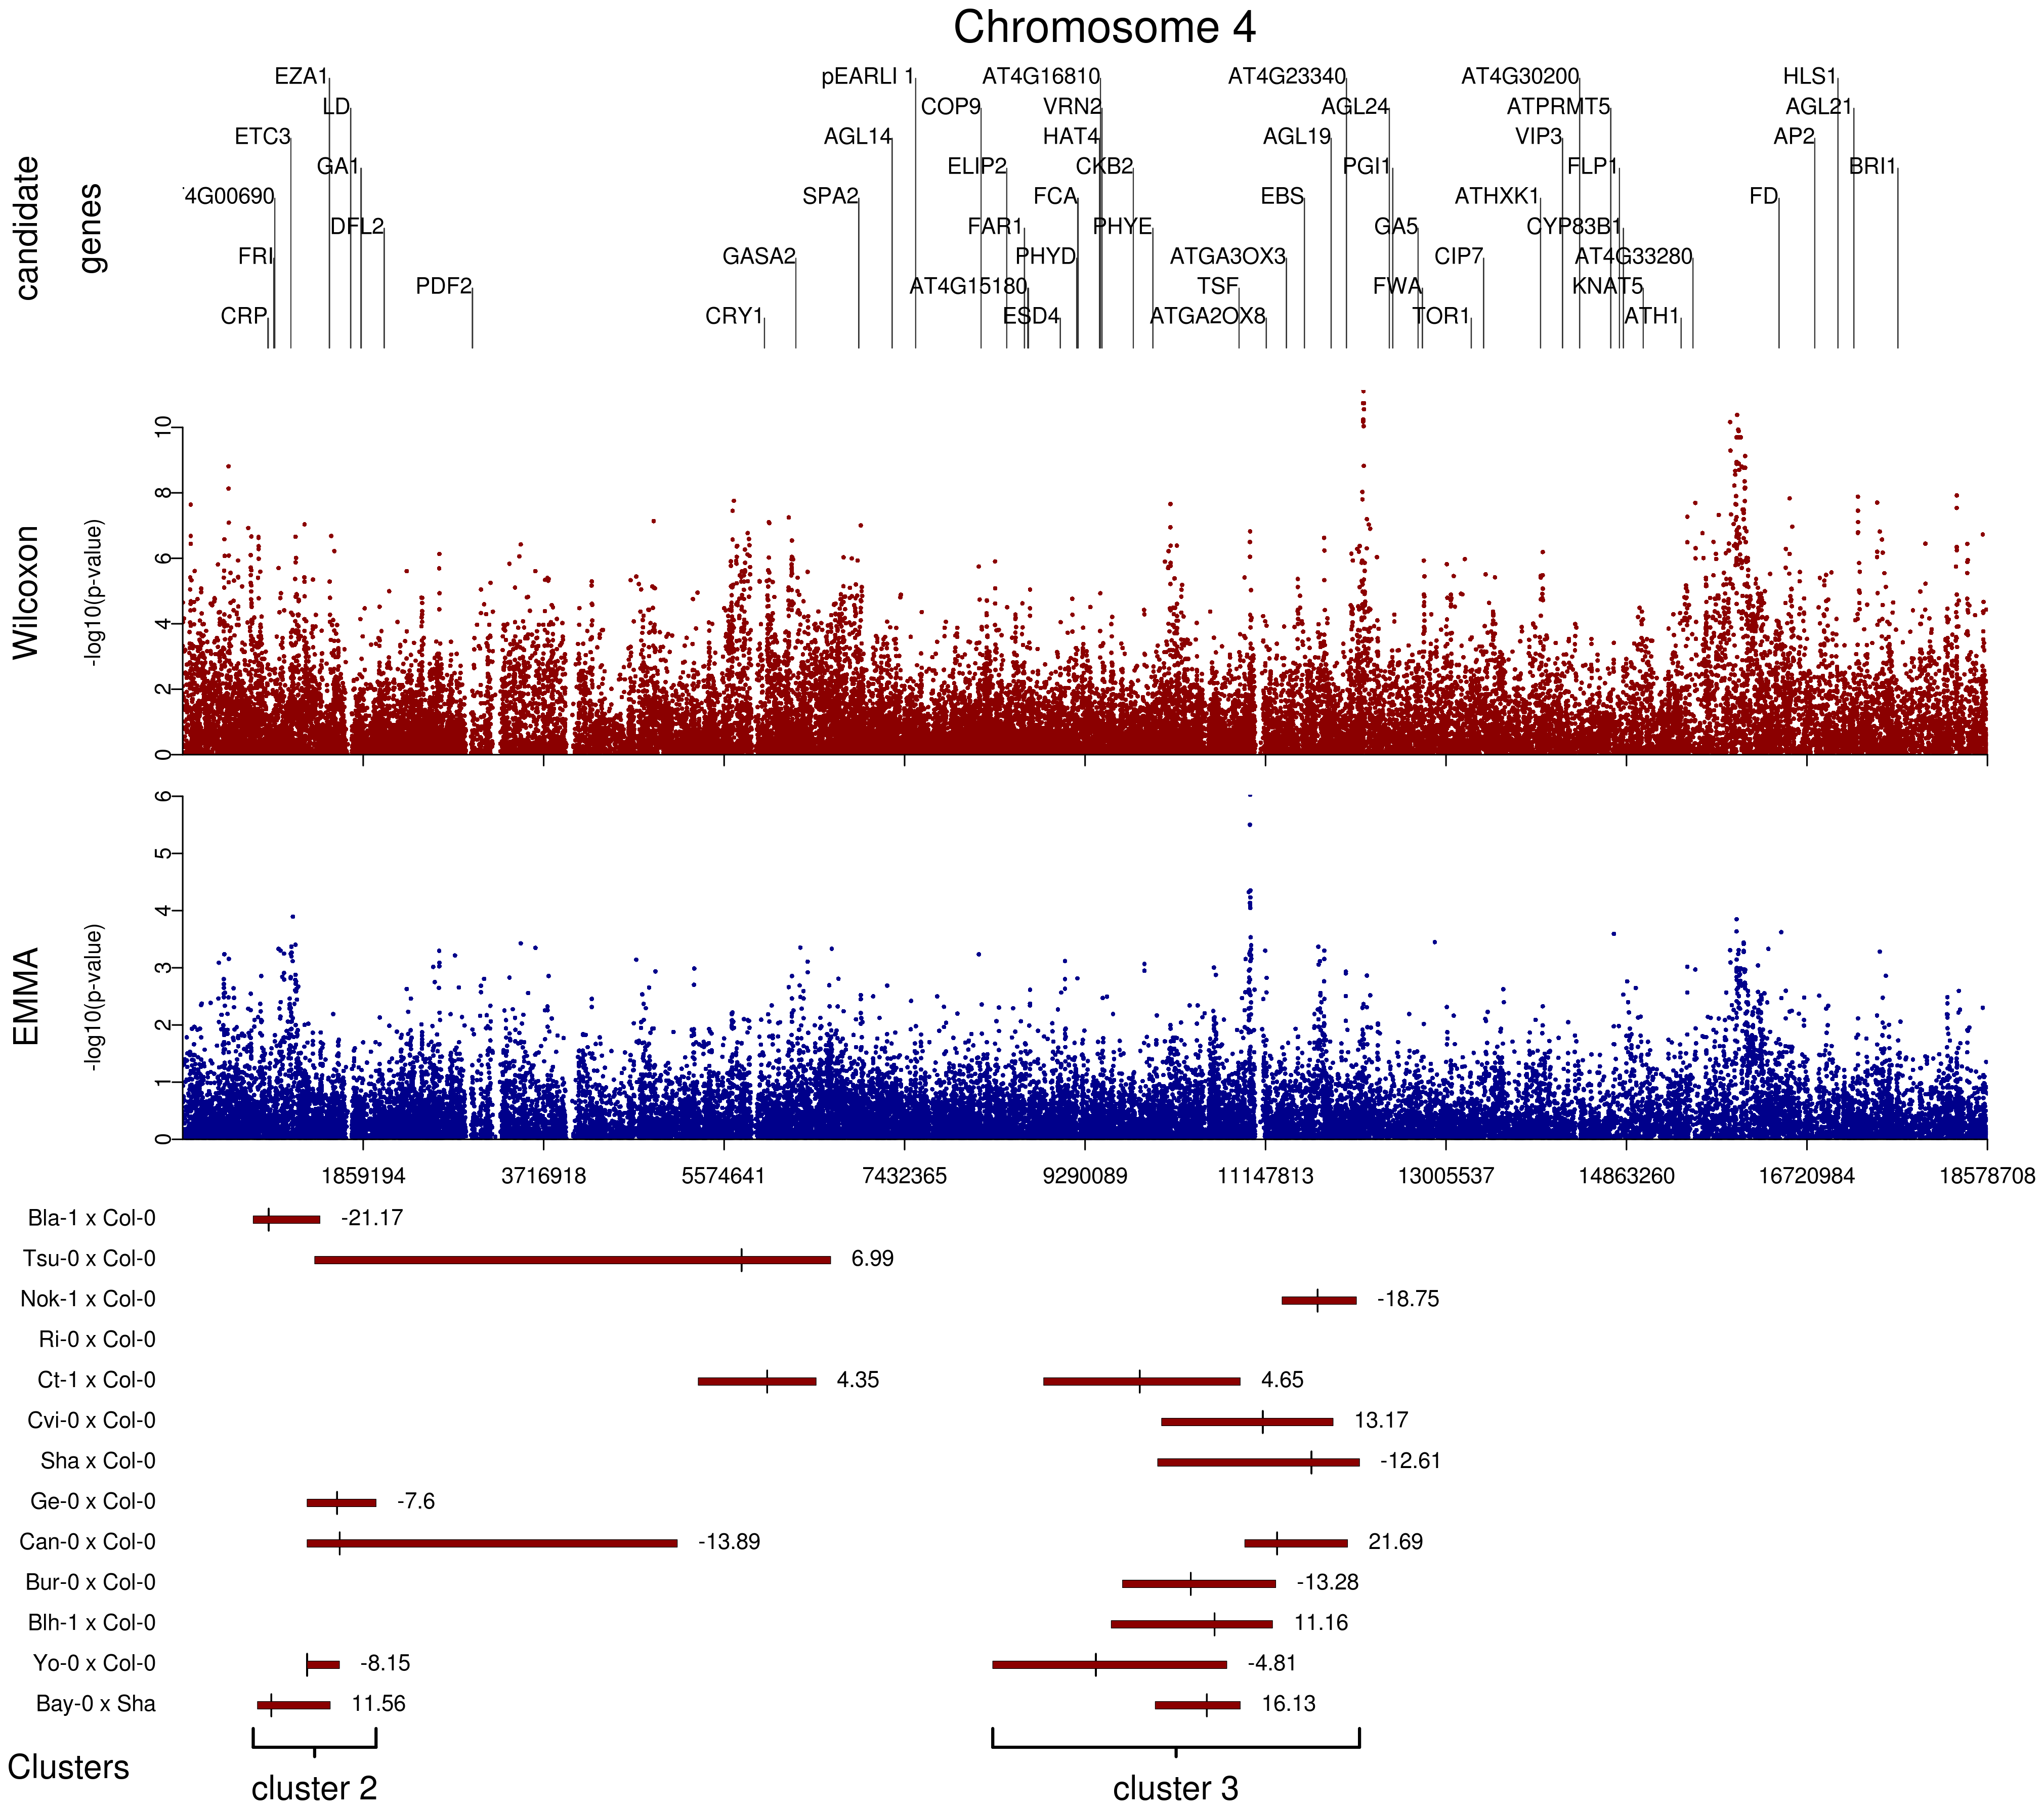 Comparison of GWA and traditional linkage mapping (additive QTLs) results for flowering time for chromosome 4.